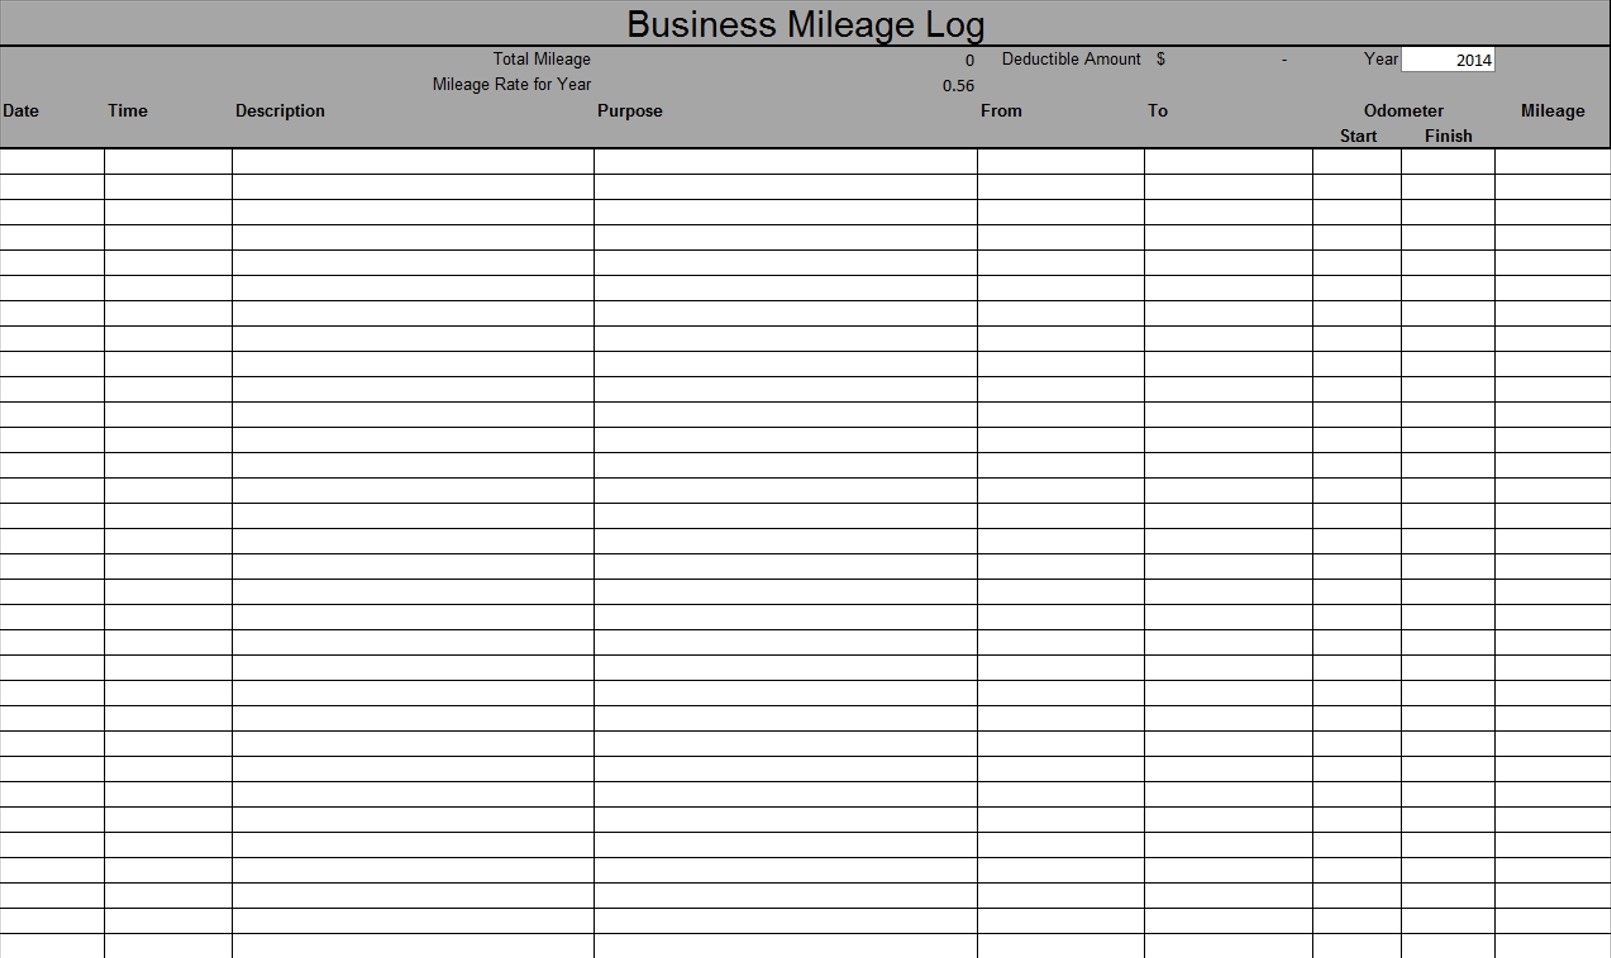 Business Mileage Log - Virgin Consulting